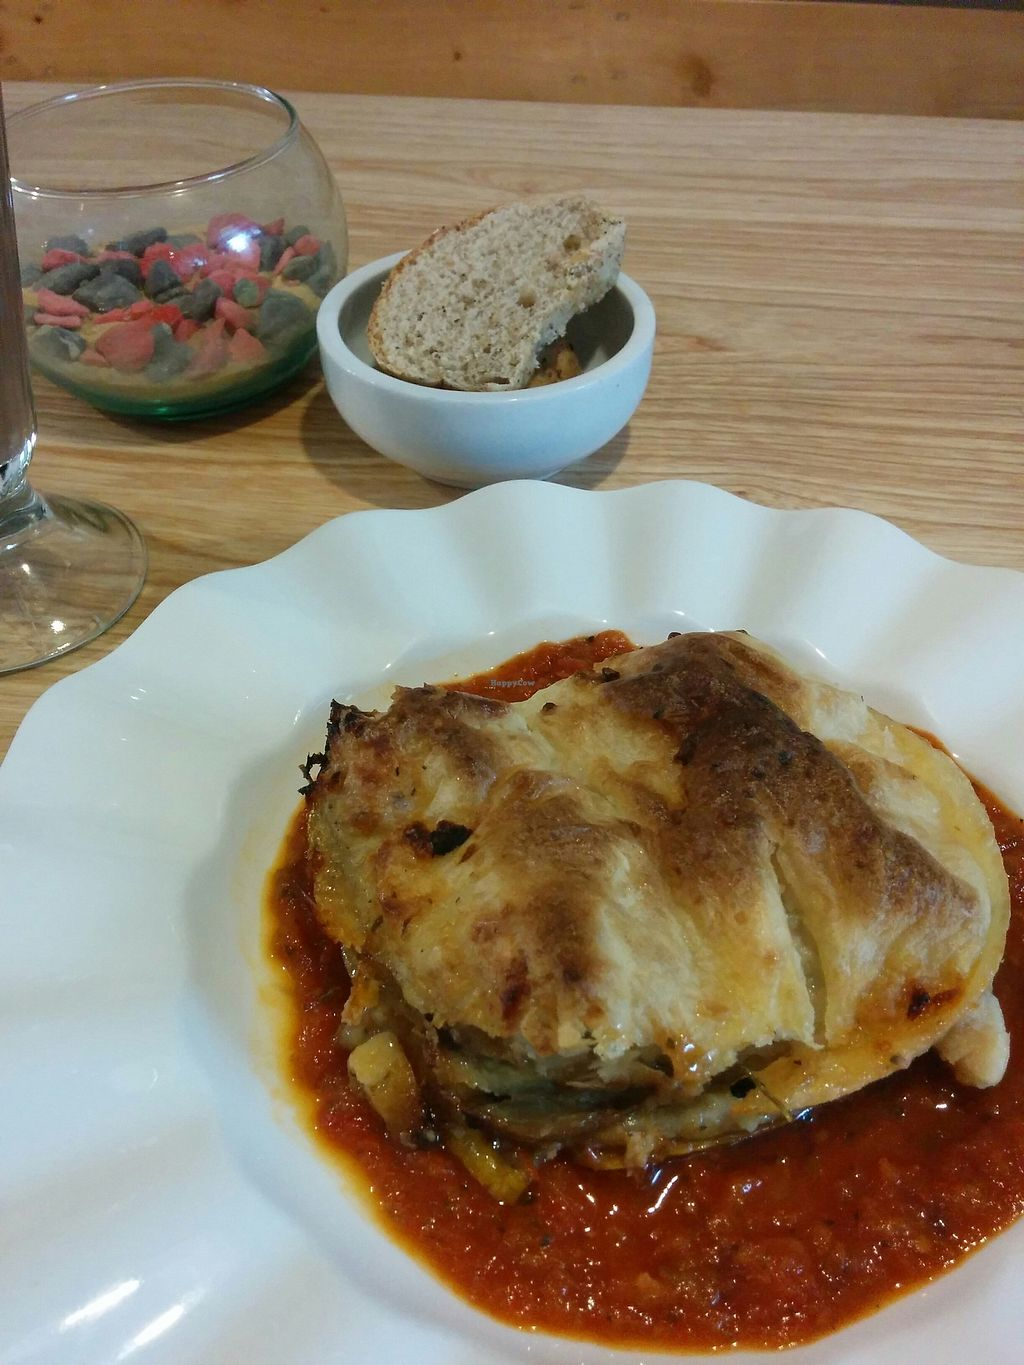 """Photo of Caballete and Berenjena  by <a href=""""/members/profile/Eepie"""">Eepie</a> <br/>Musaka <br/> July 13, 2017  - <a href='/contact/abuse/image/42226/279864'>Report</a>"""